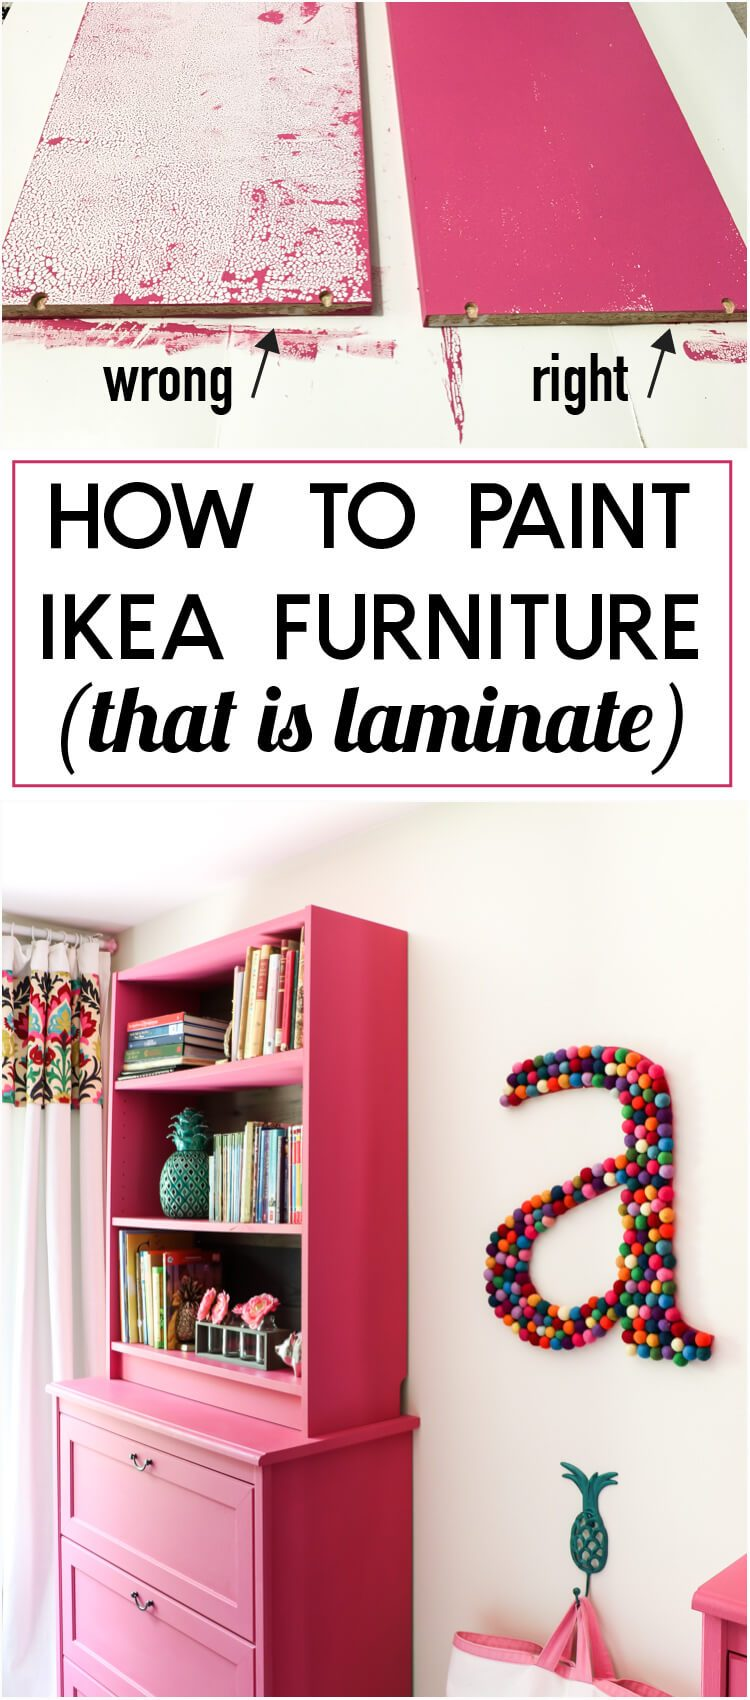 Tricks to painting ikea furniture what not to do for Tutorial ikea home planner